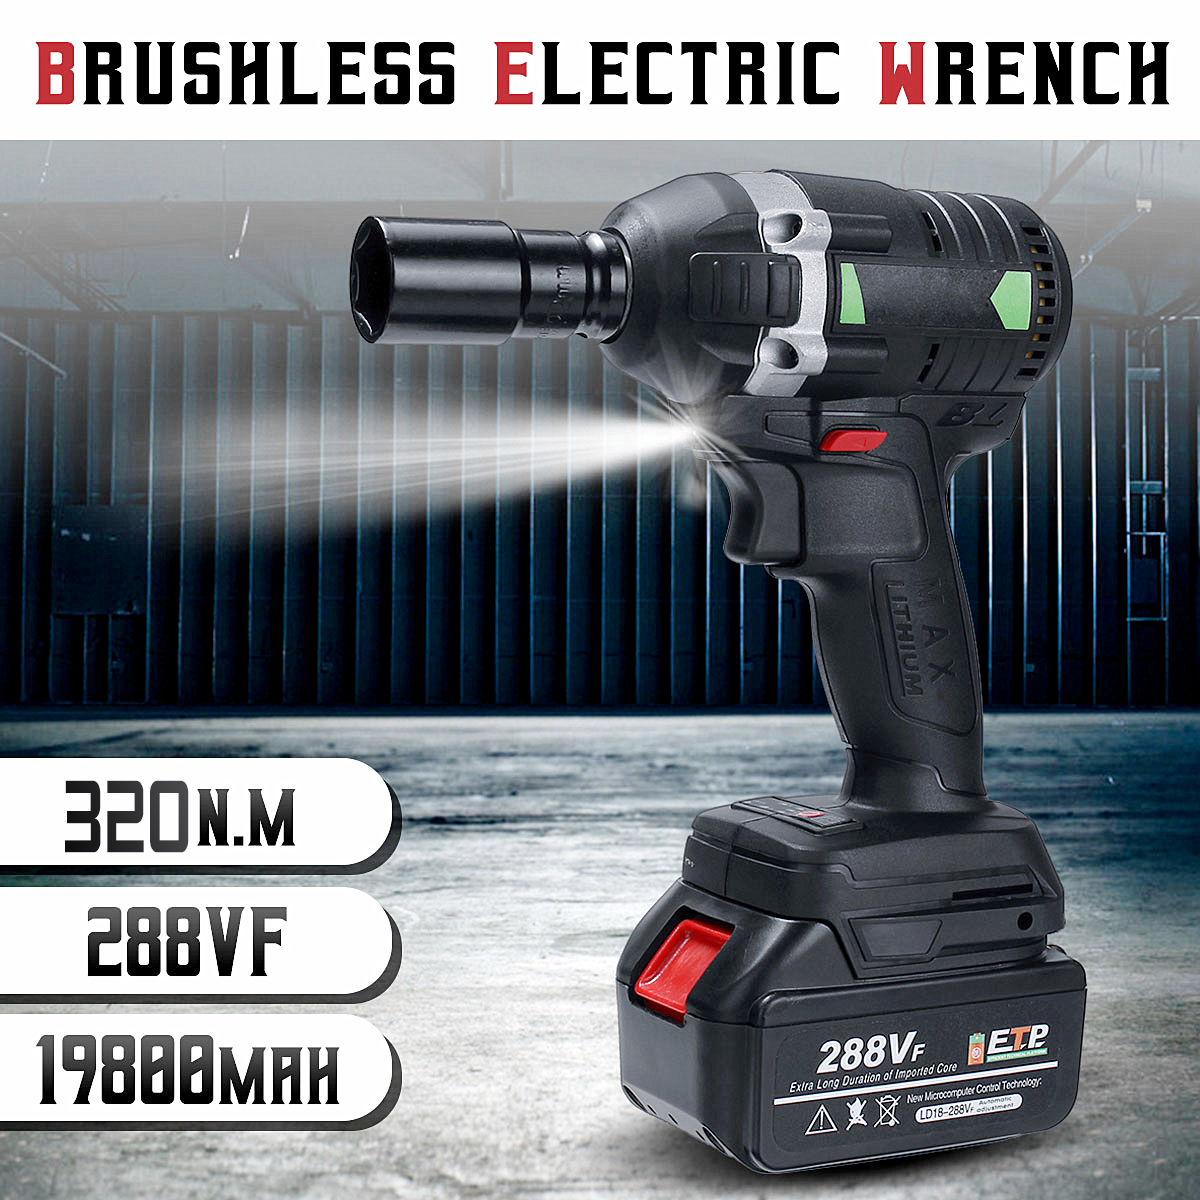 110-240V 320N m 288VF Cordless Brushless Electric Impact Wrench Electric Wrench with 1x Li-ion Battery Installation Power Tools